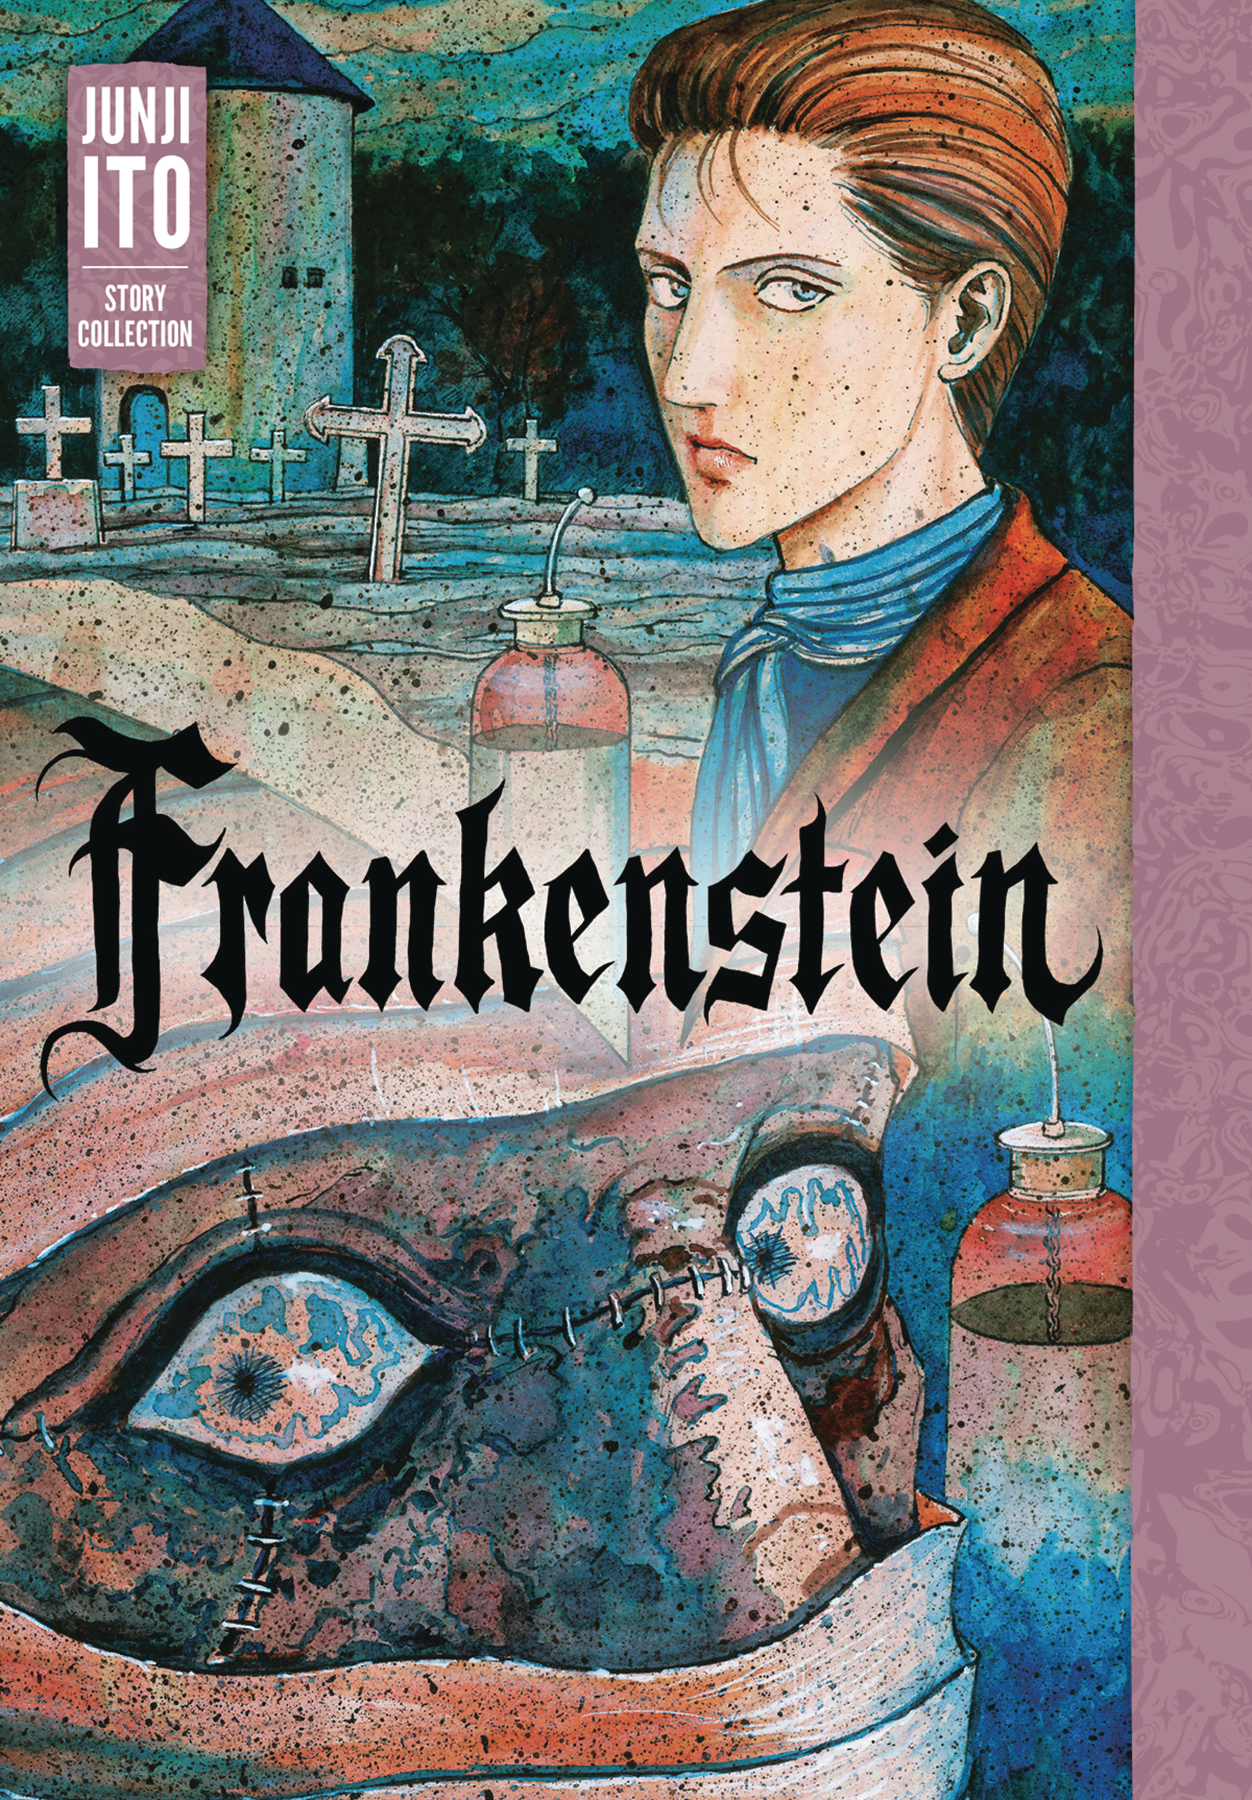 FRANKENSTEIN HC JUNJI ITO STORY COLLECTION